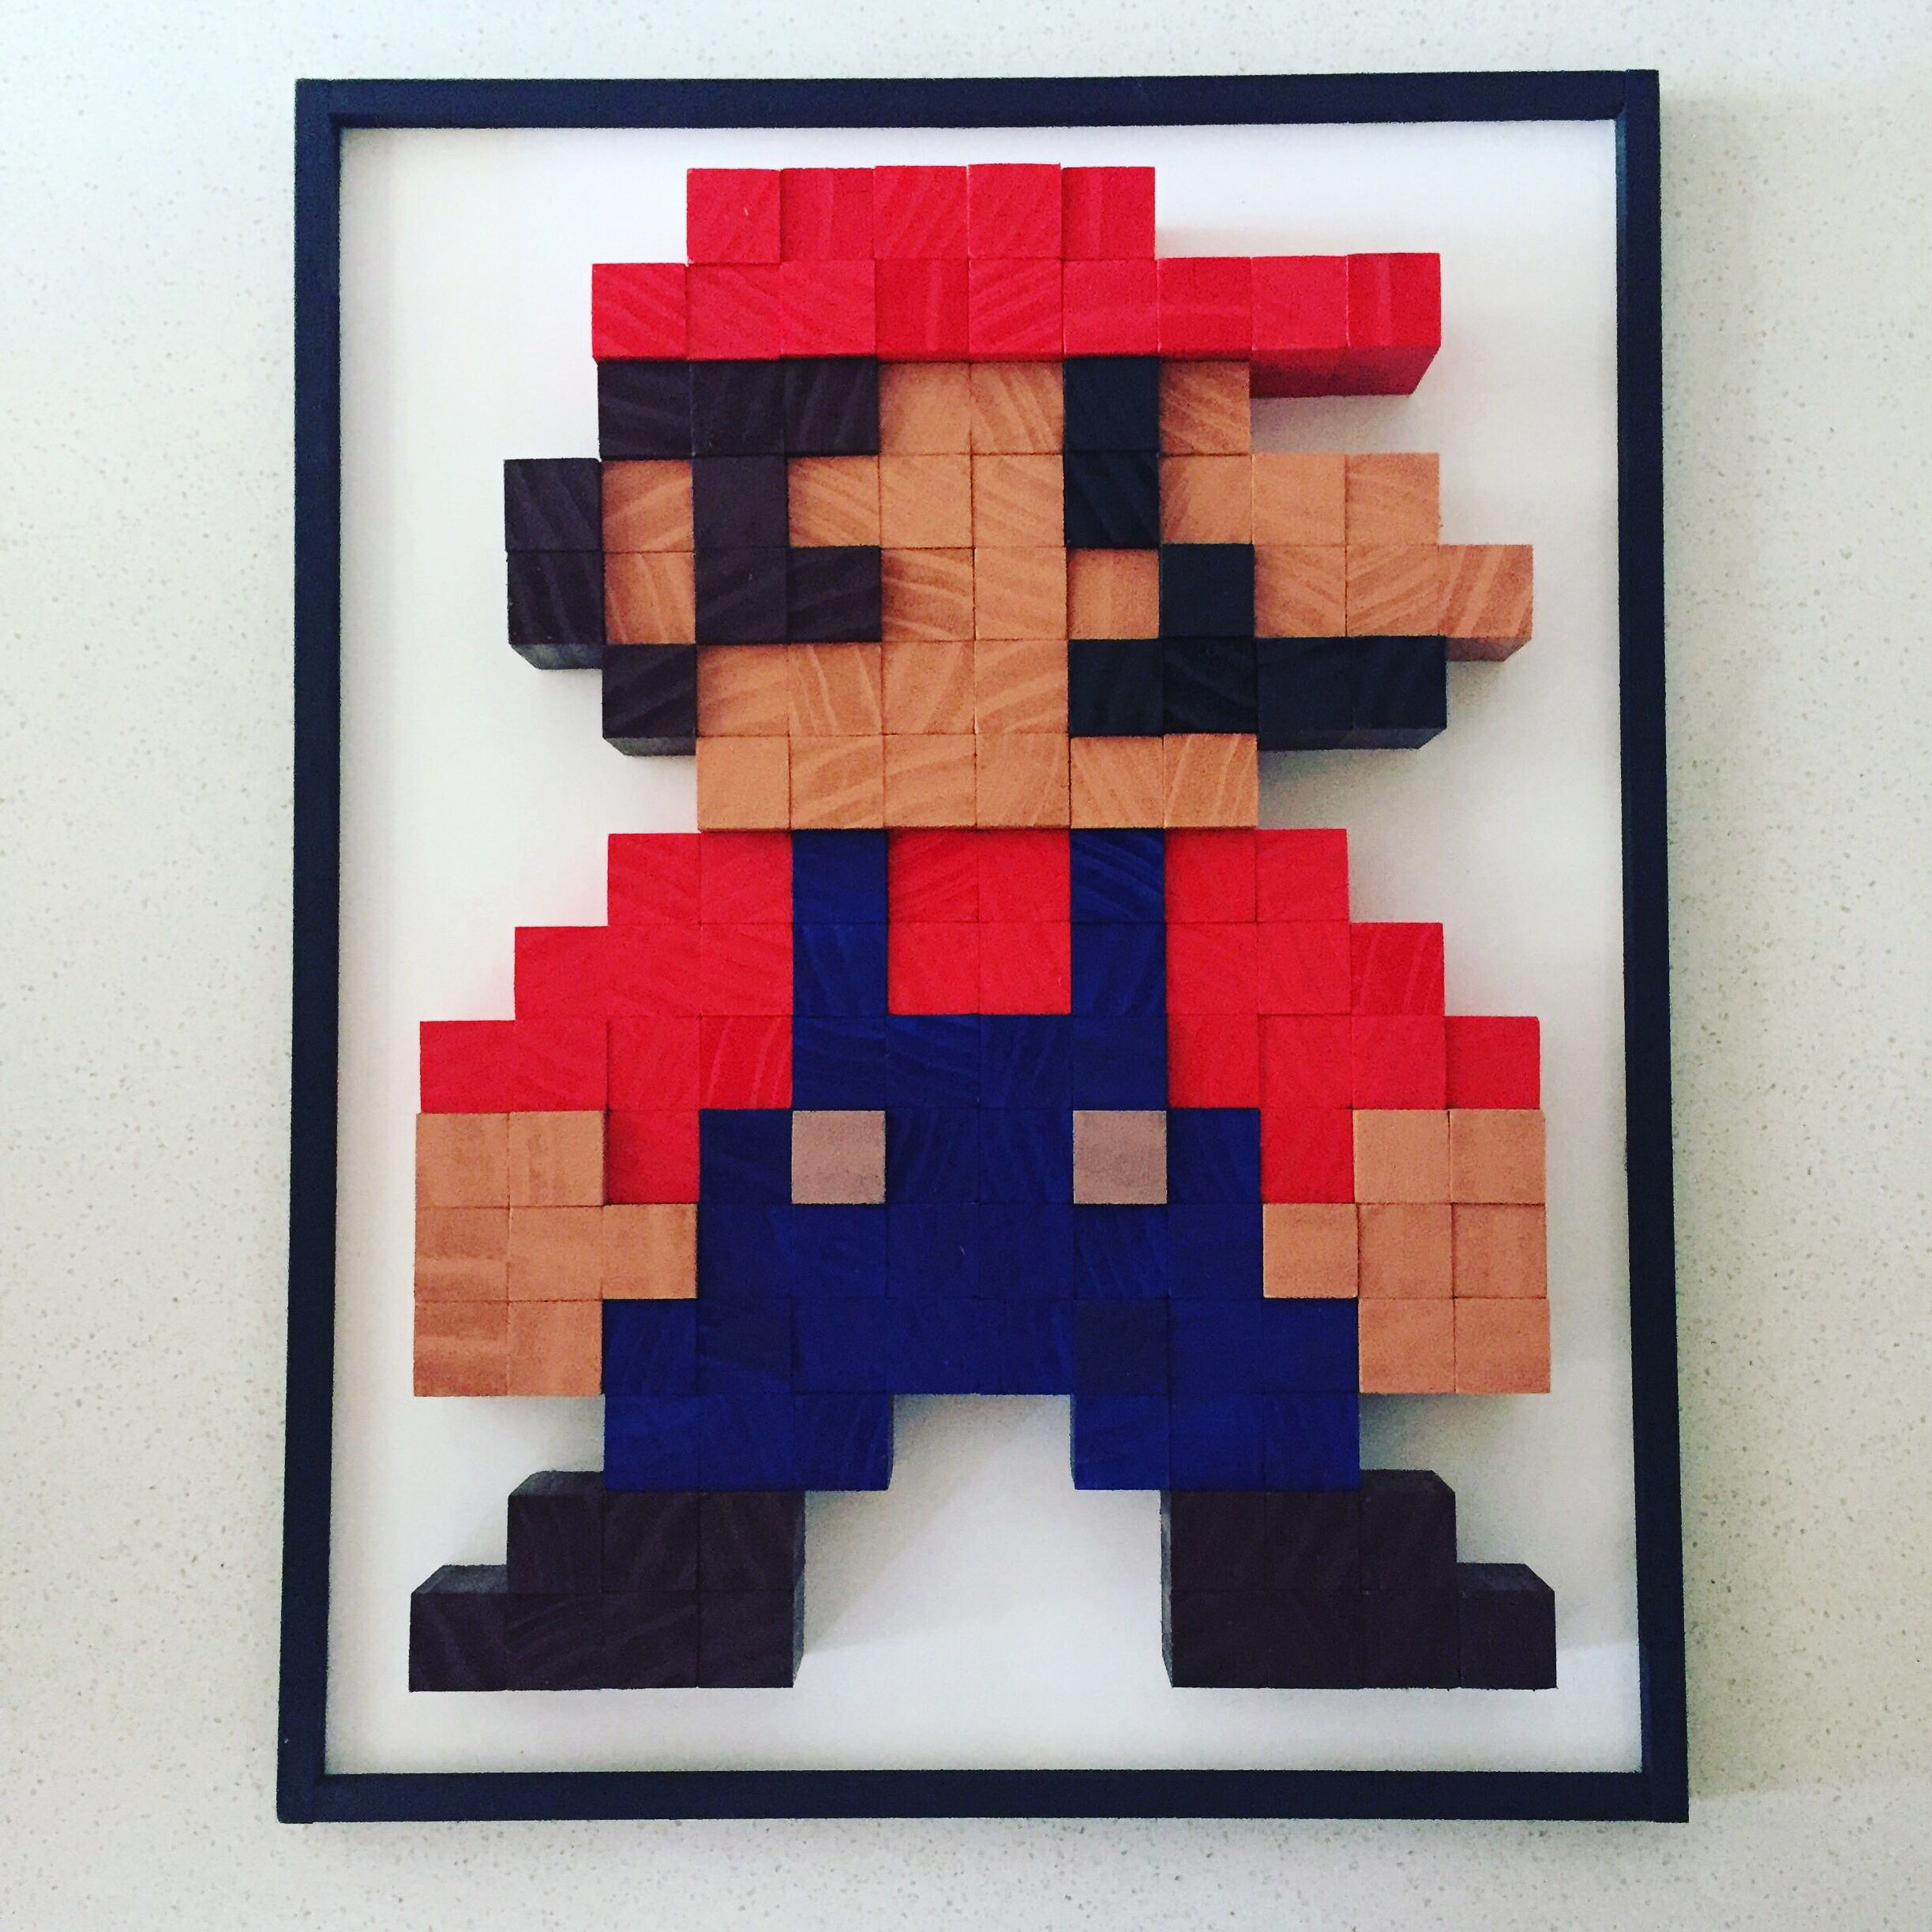 Awesome Pixel Art 8bit Super Mario Made Of Wood Blocks